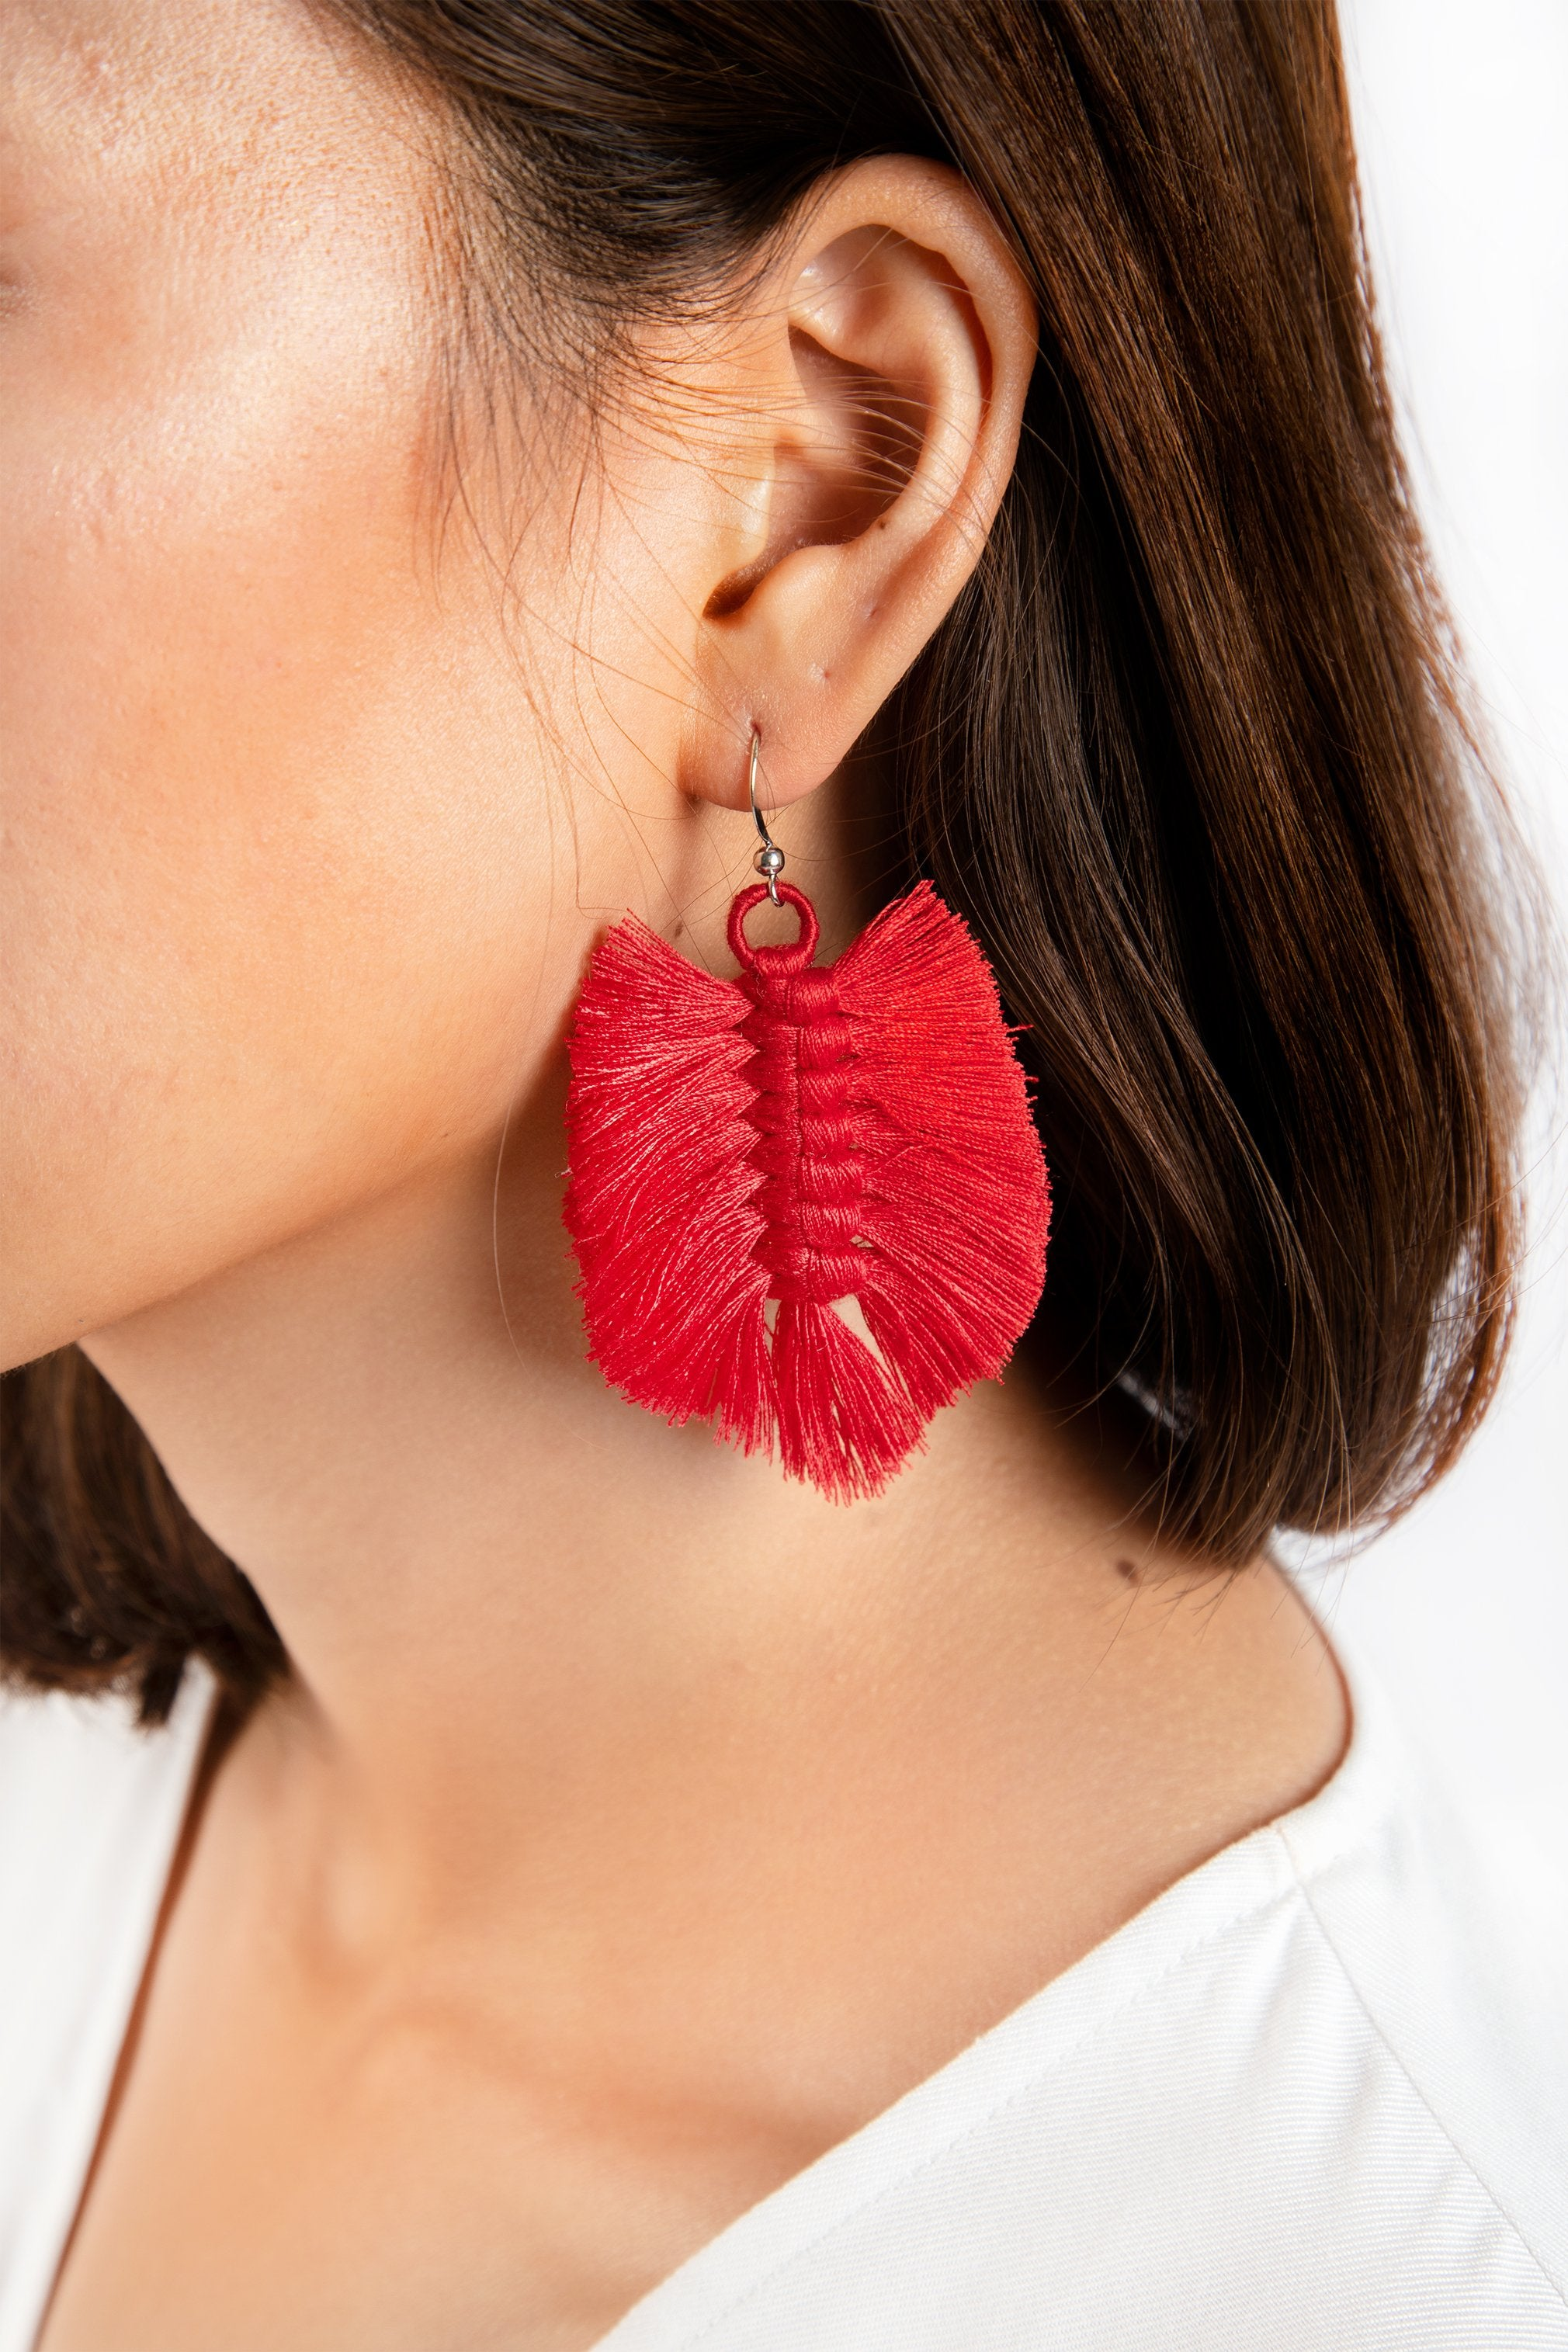 Sandar Leaf Earrings - Raspberry - Our Barehands